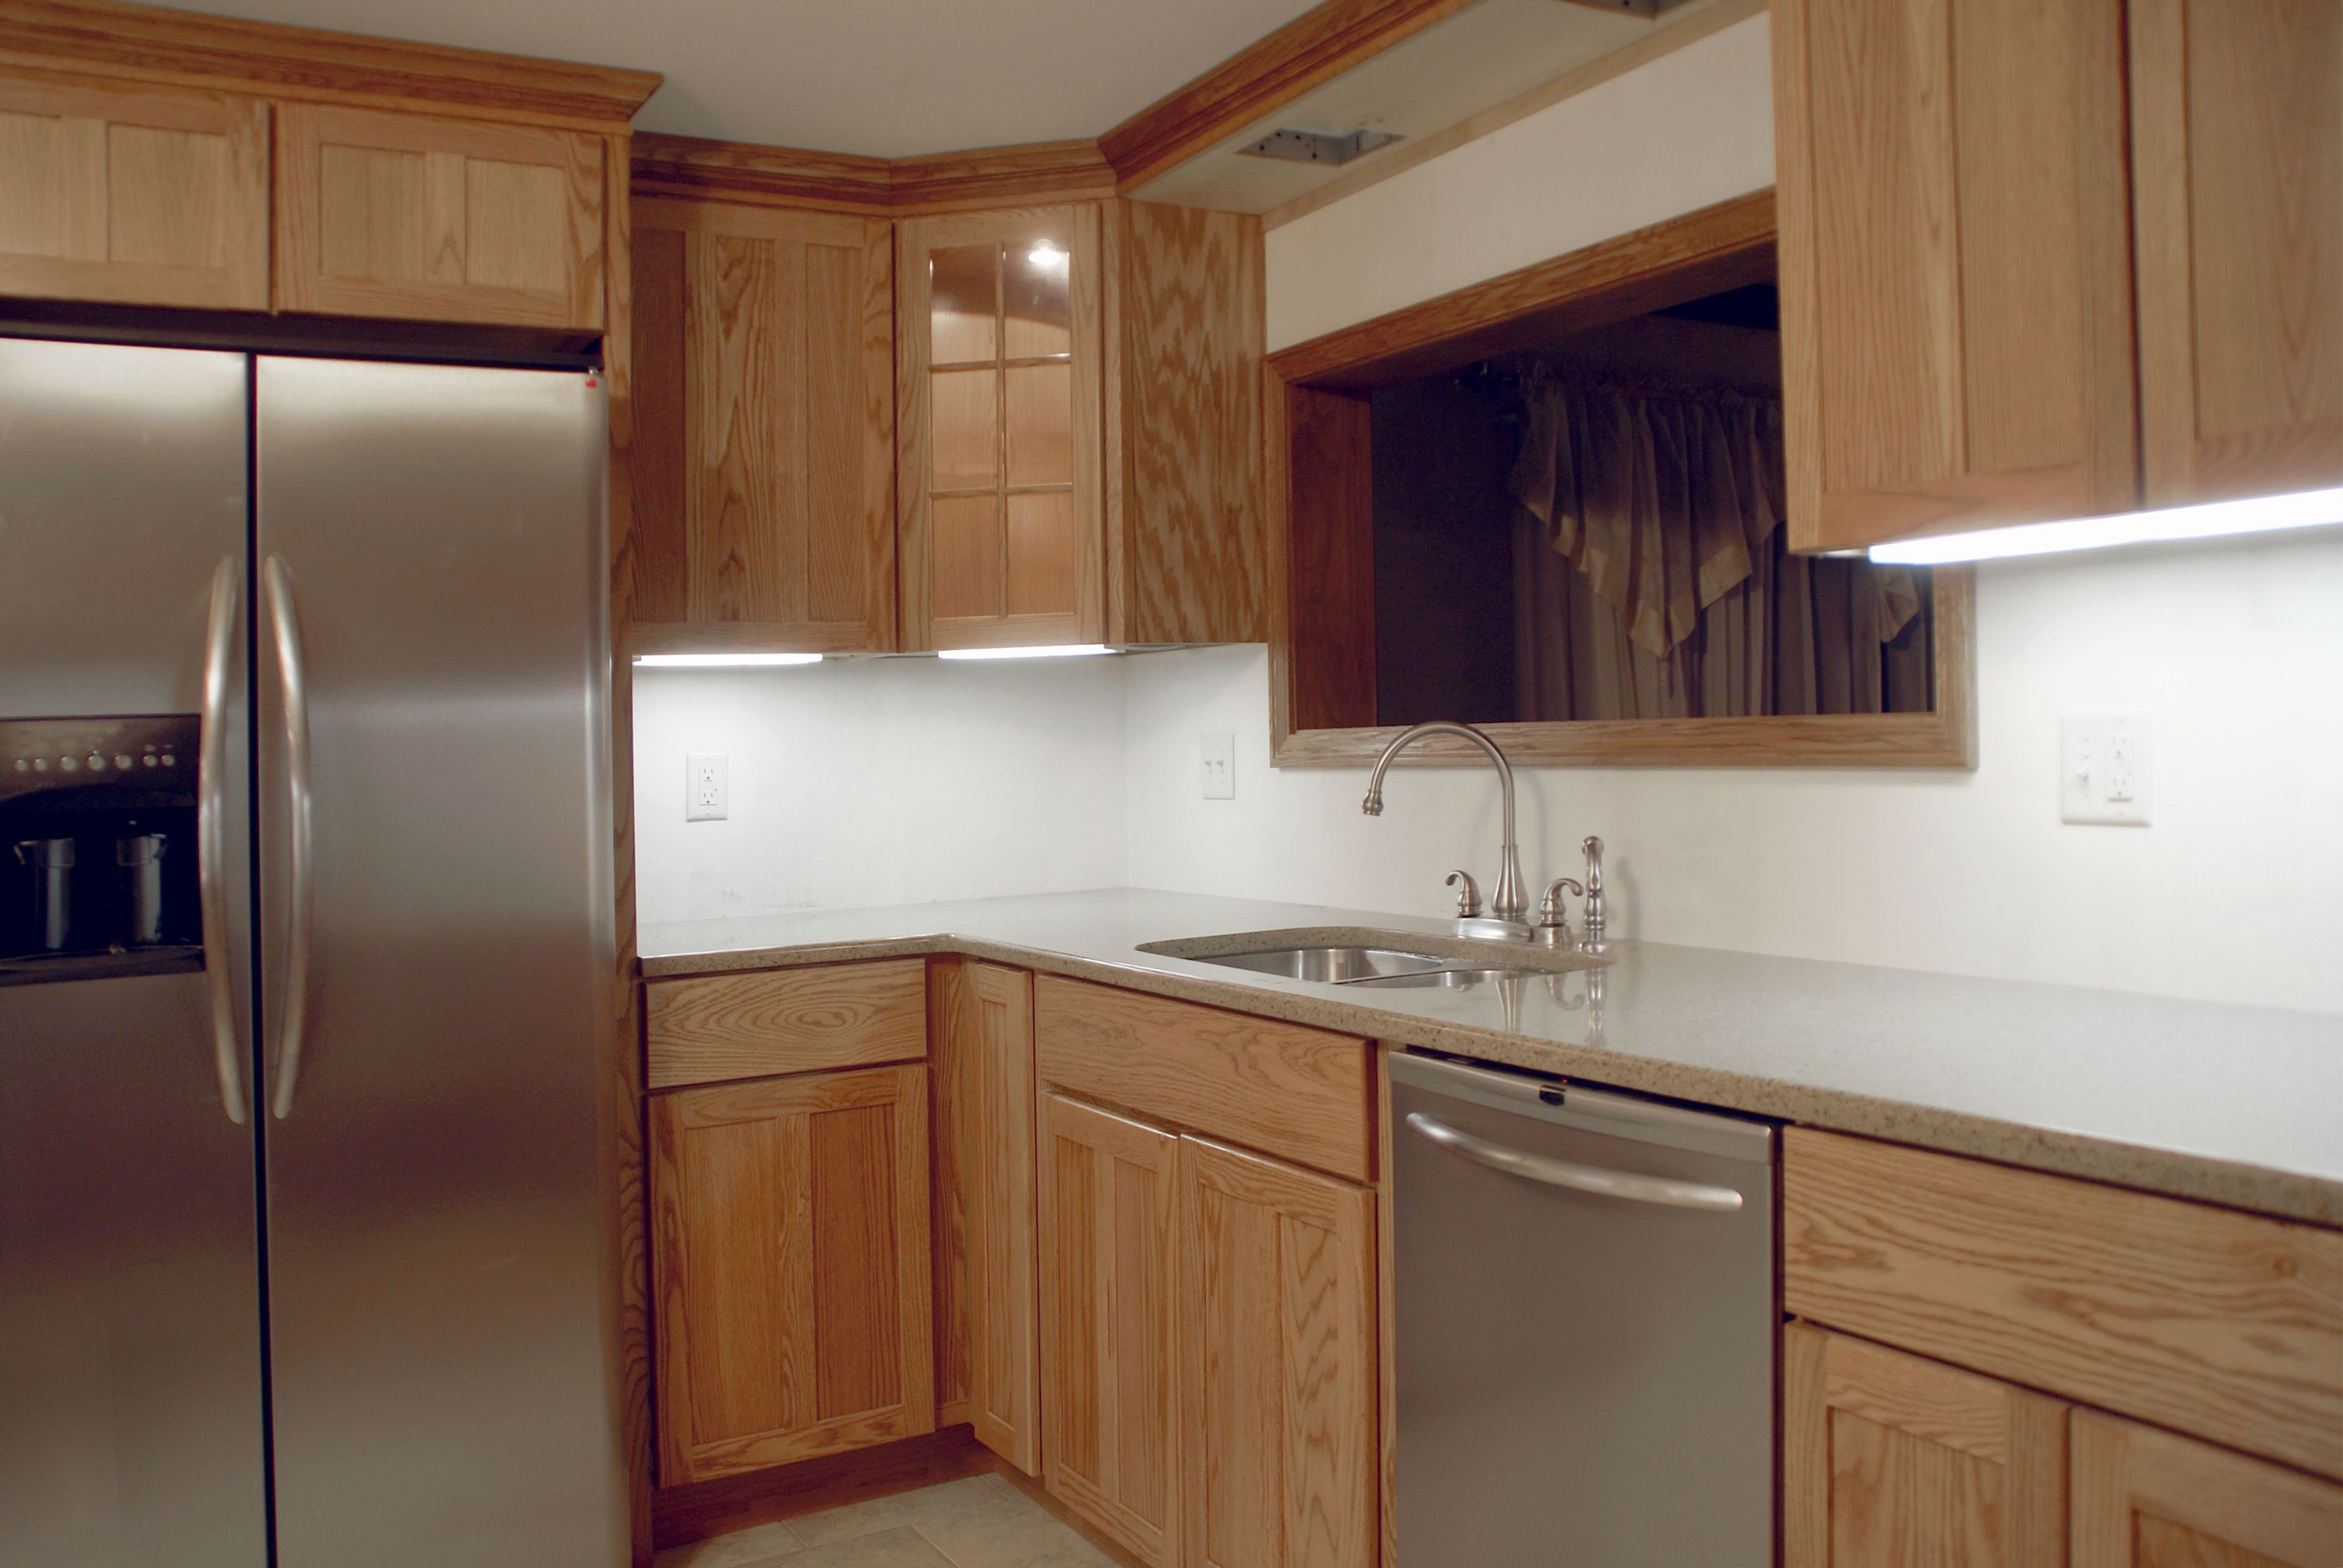 Corner Kitchen Sink Cabinet Dimensions For An Island